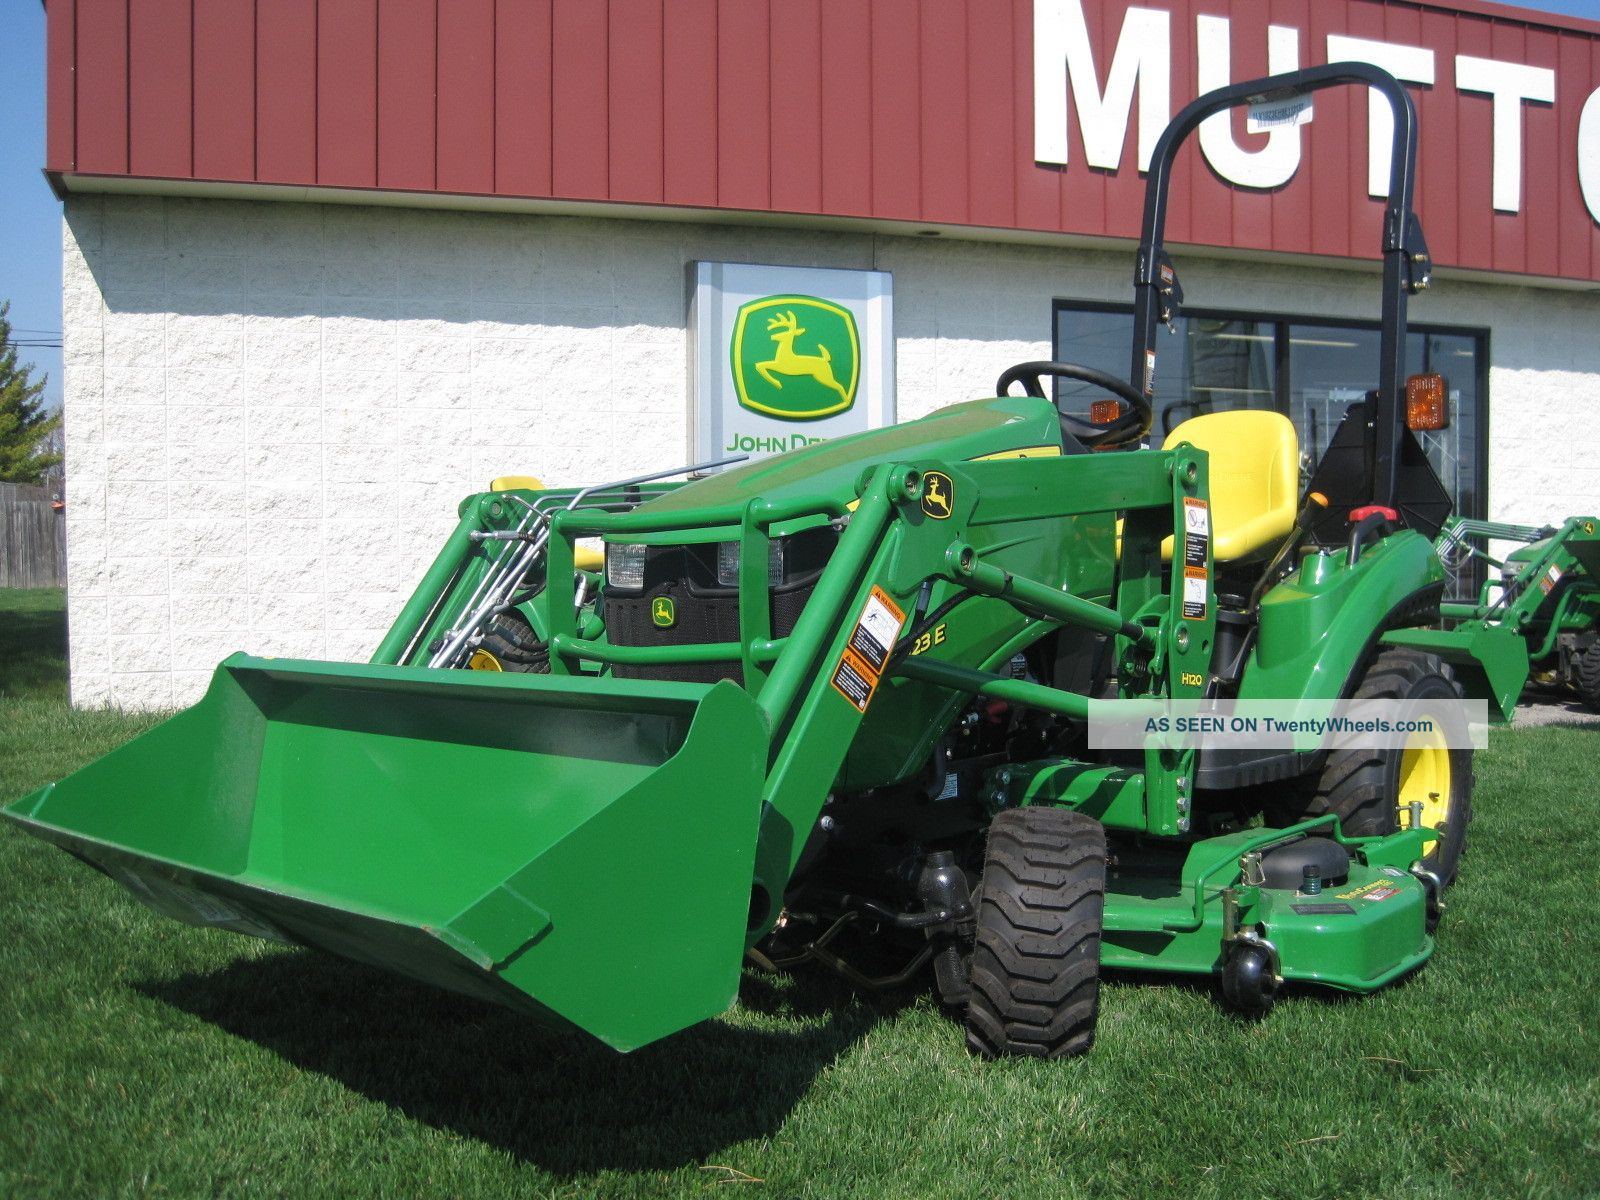 New John Deere 1023e 1 Series Sub Compact Tractor With Front Loader & Mid Mower Tractors photo